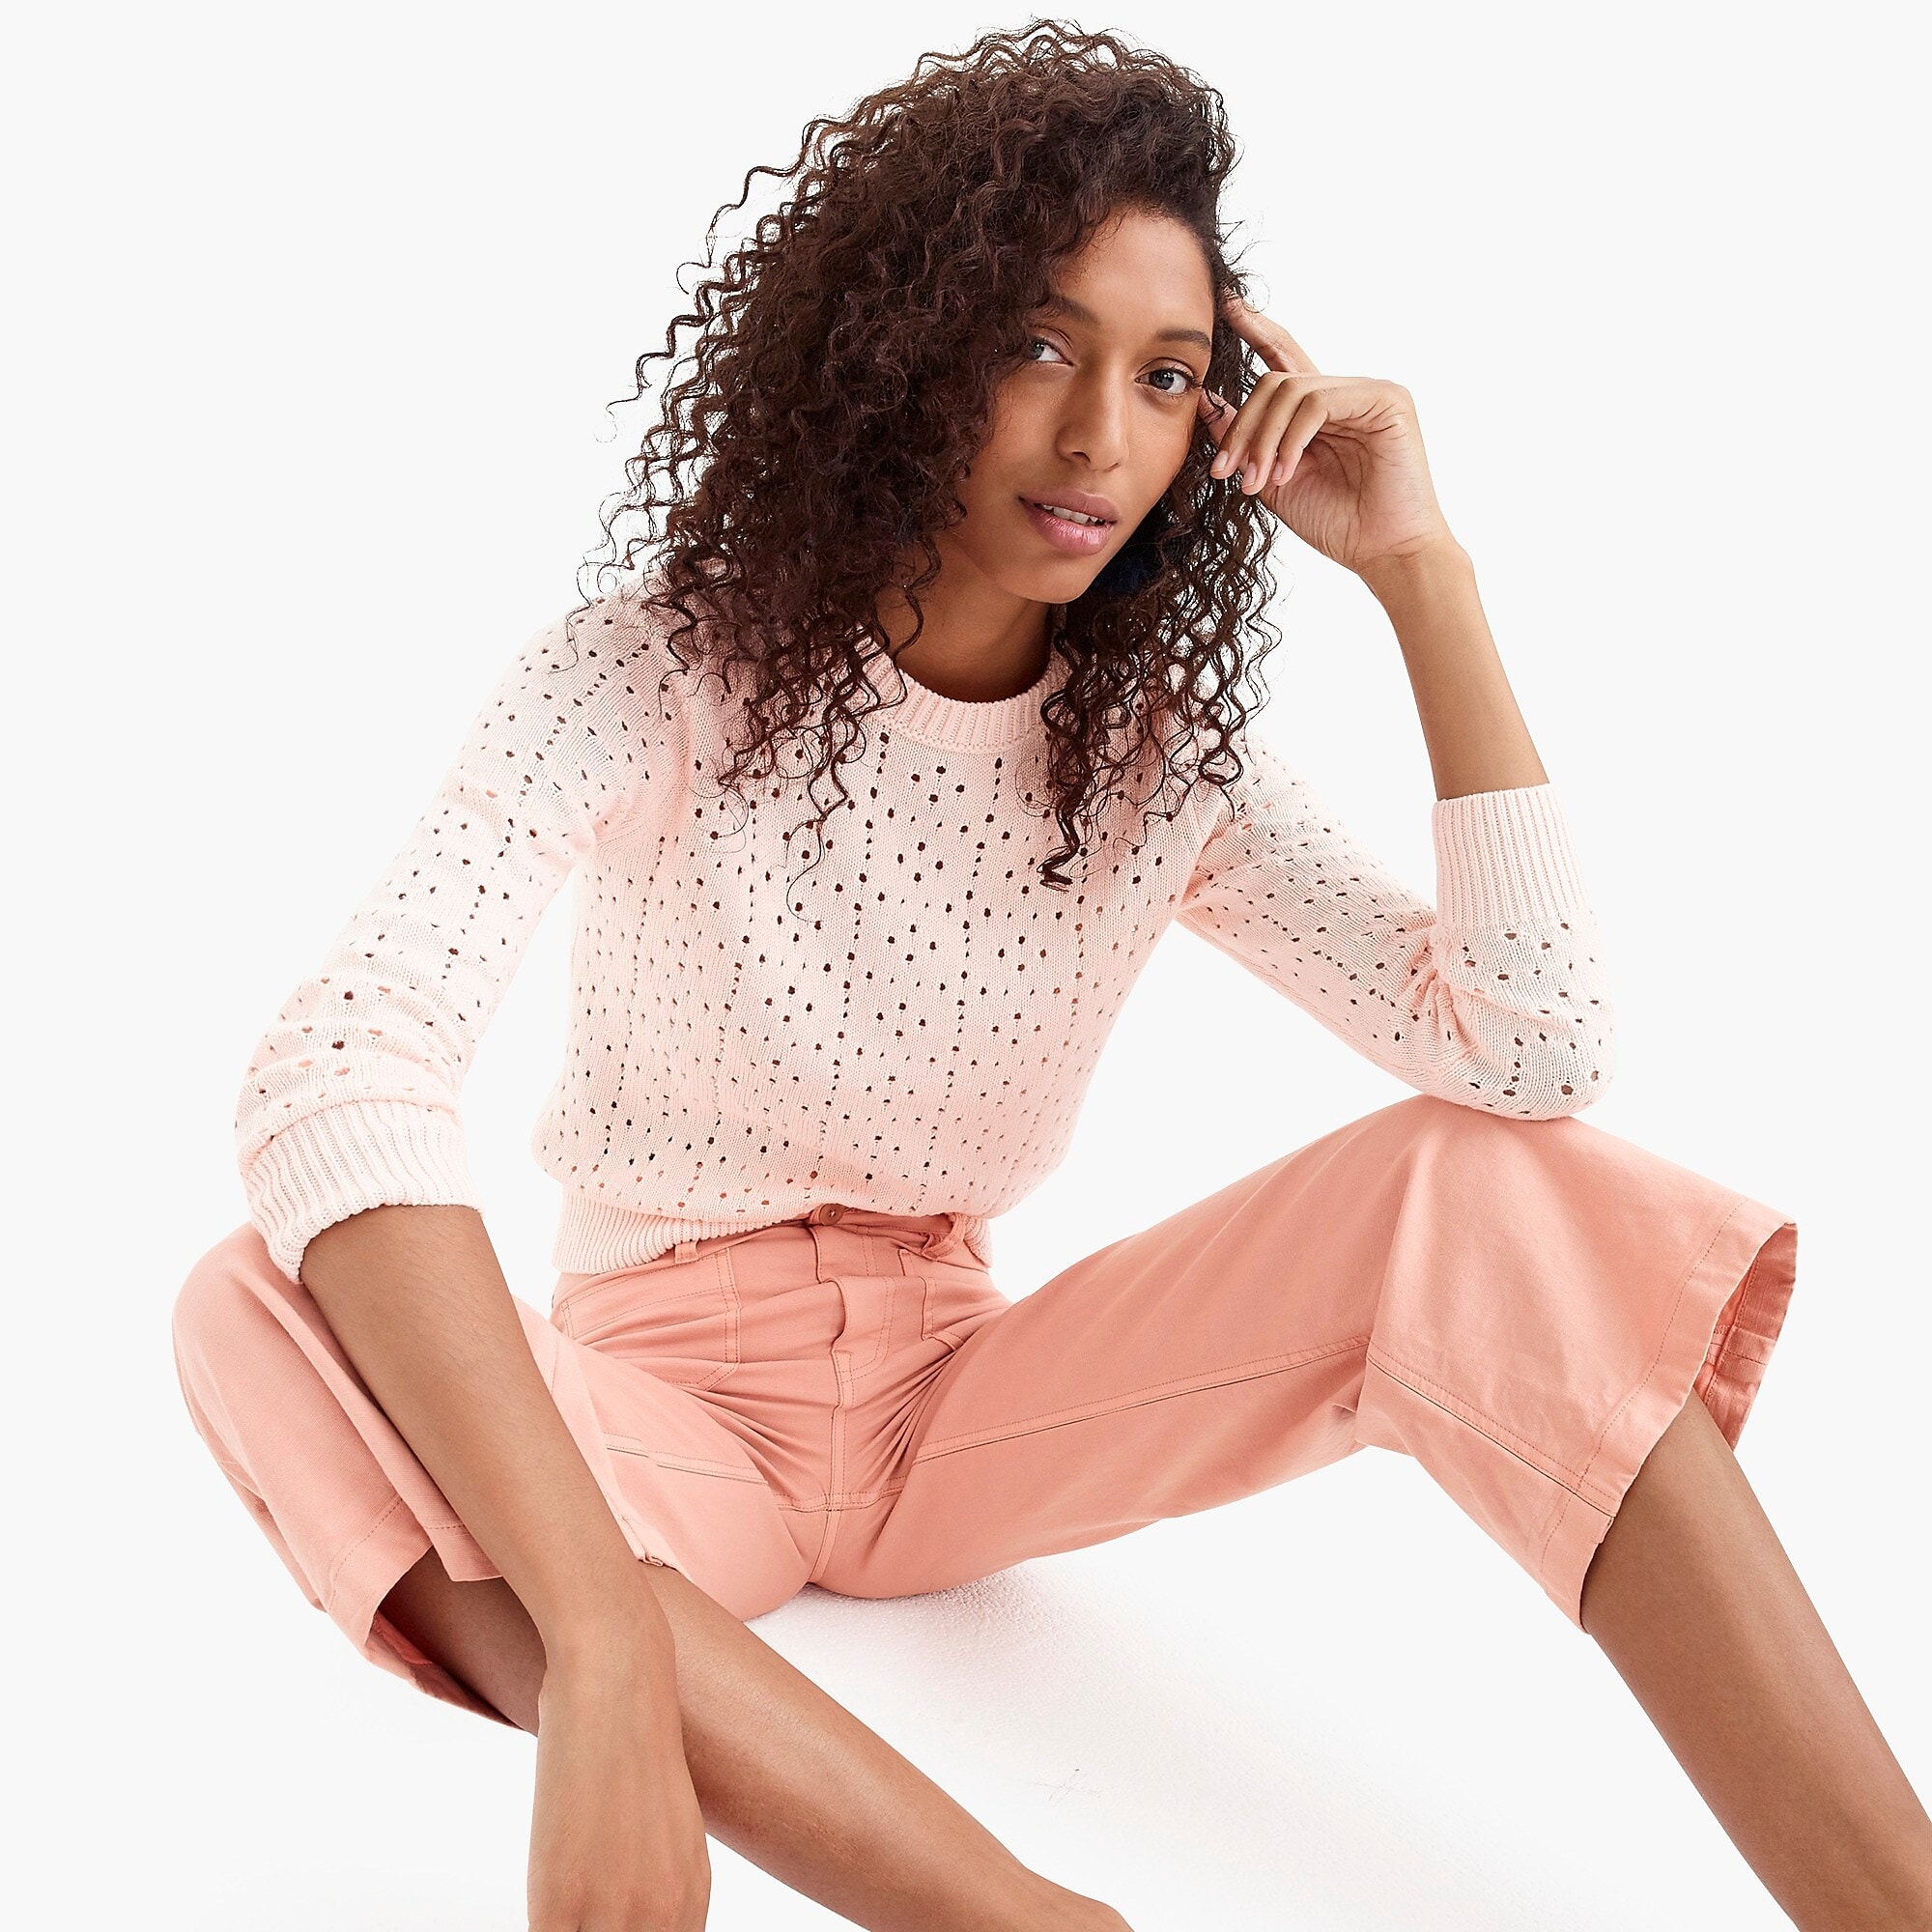 woman sitting in pink sweater